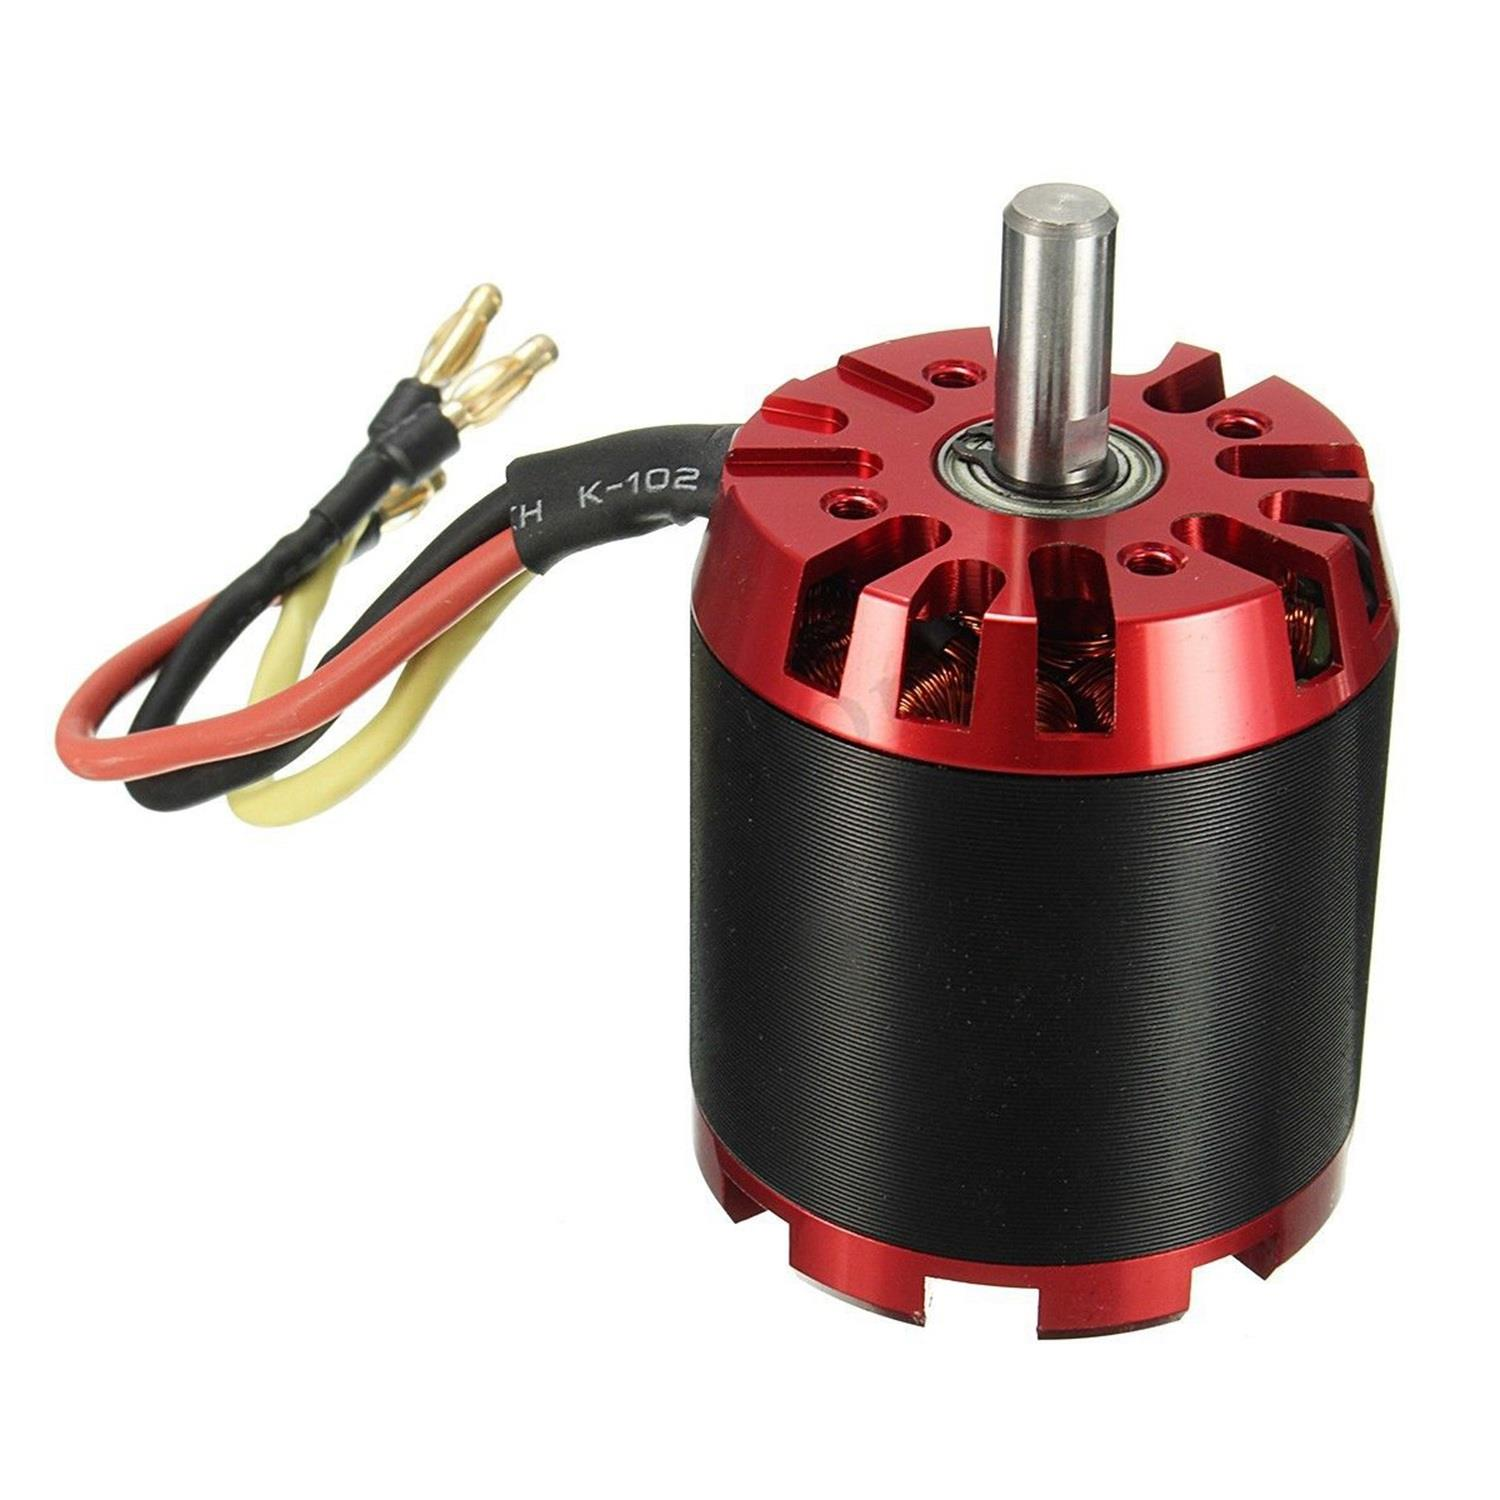 Super sell-DIY 270KV N5065 5065 <font><b>electric</b></font> <font><b>scooter</b></font> brushless <font><b>motor</b></font> four <font><b>wheel</b></font> <font><b>scooter</b></font> pulley <font><b>motor</b></font> RC <font><b>motor</b></font> image